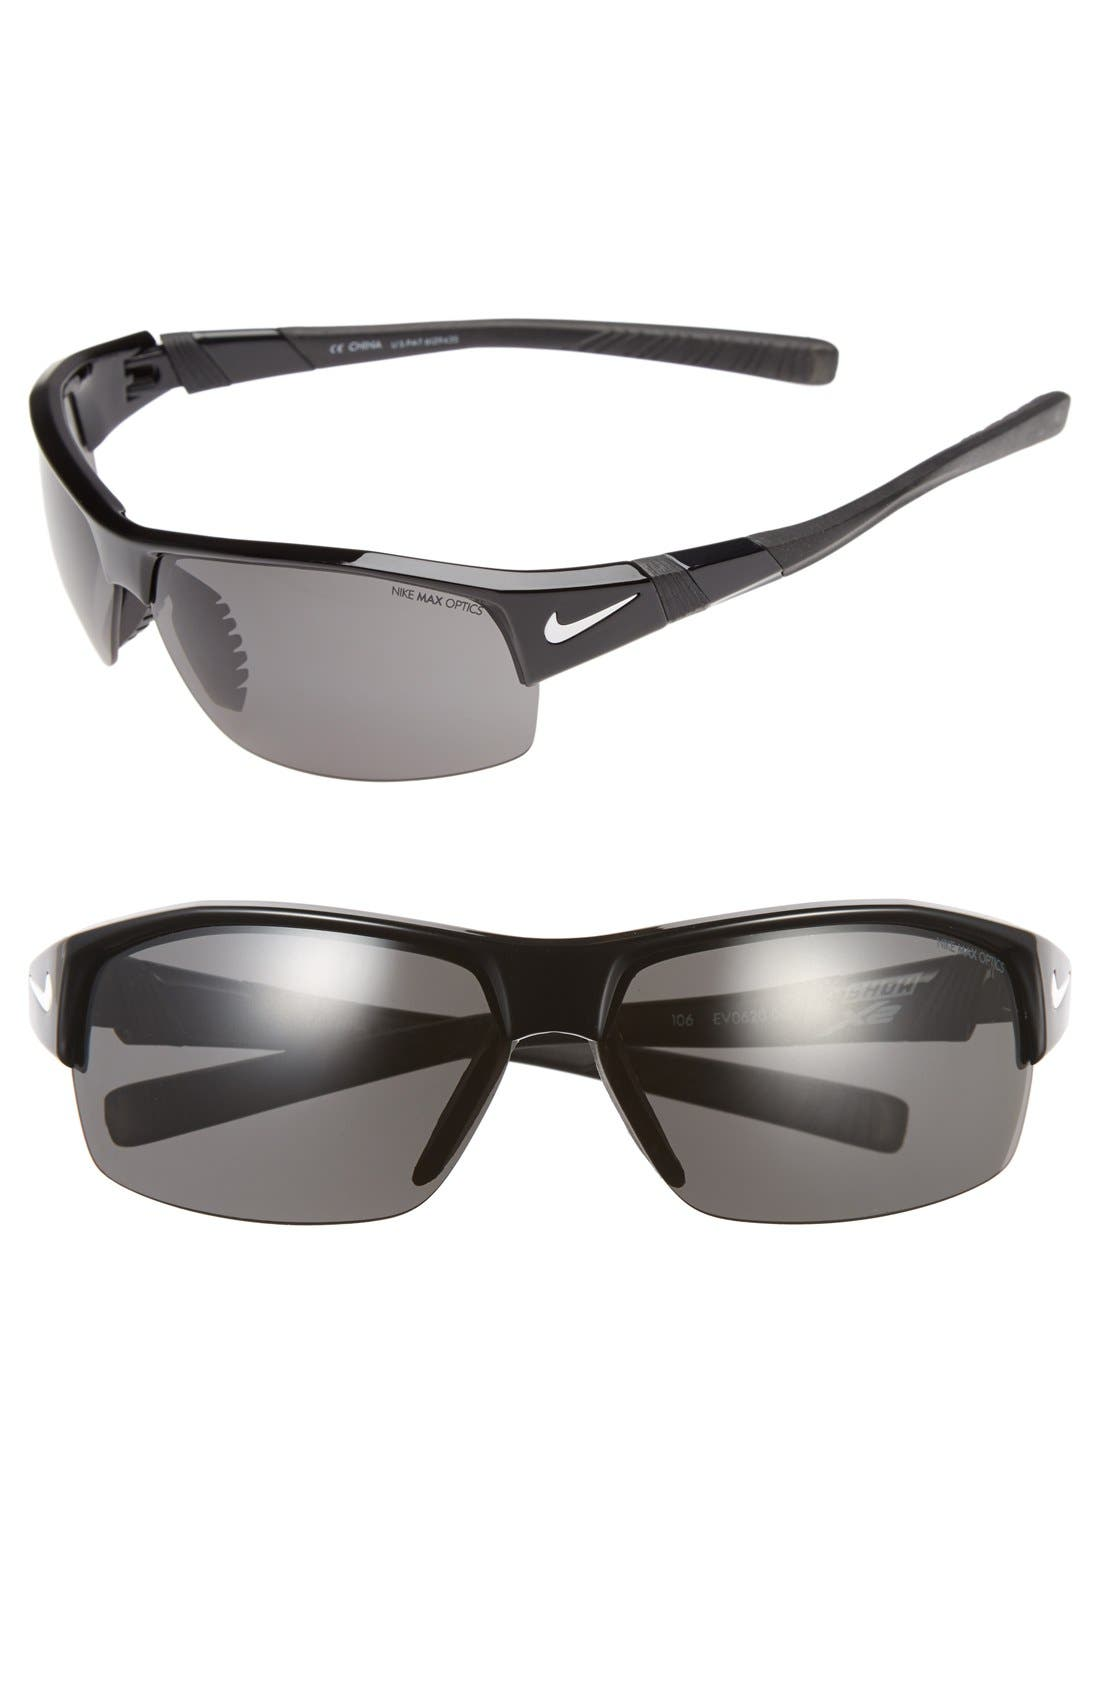 Main Image - Nike 69mm 'Show X2' Semi Rimless Sunglasses